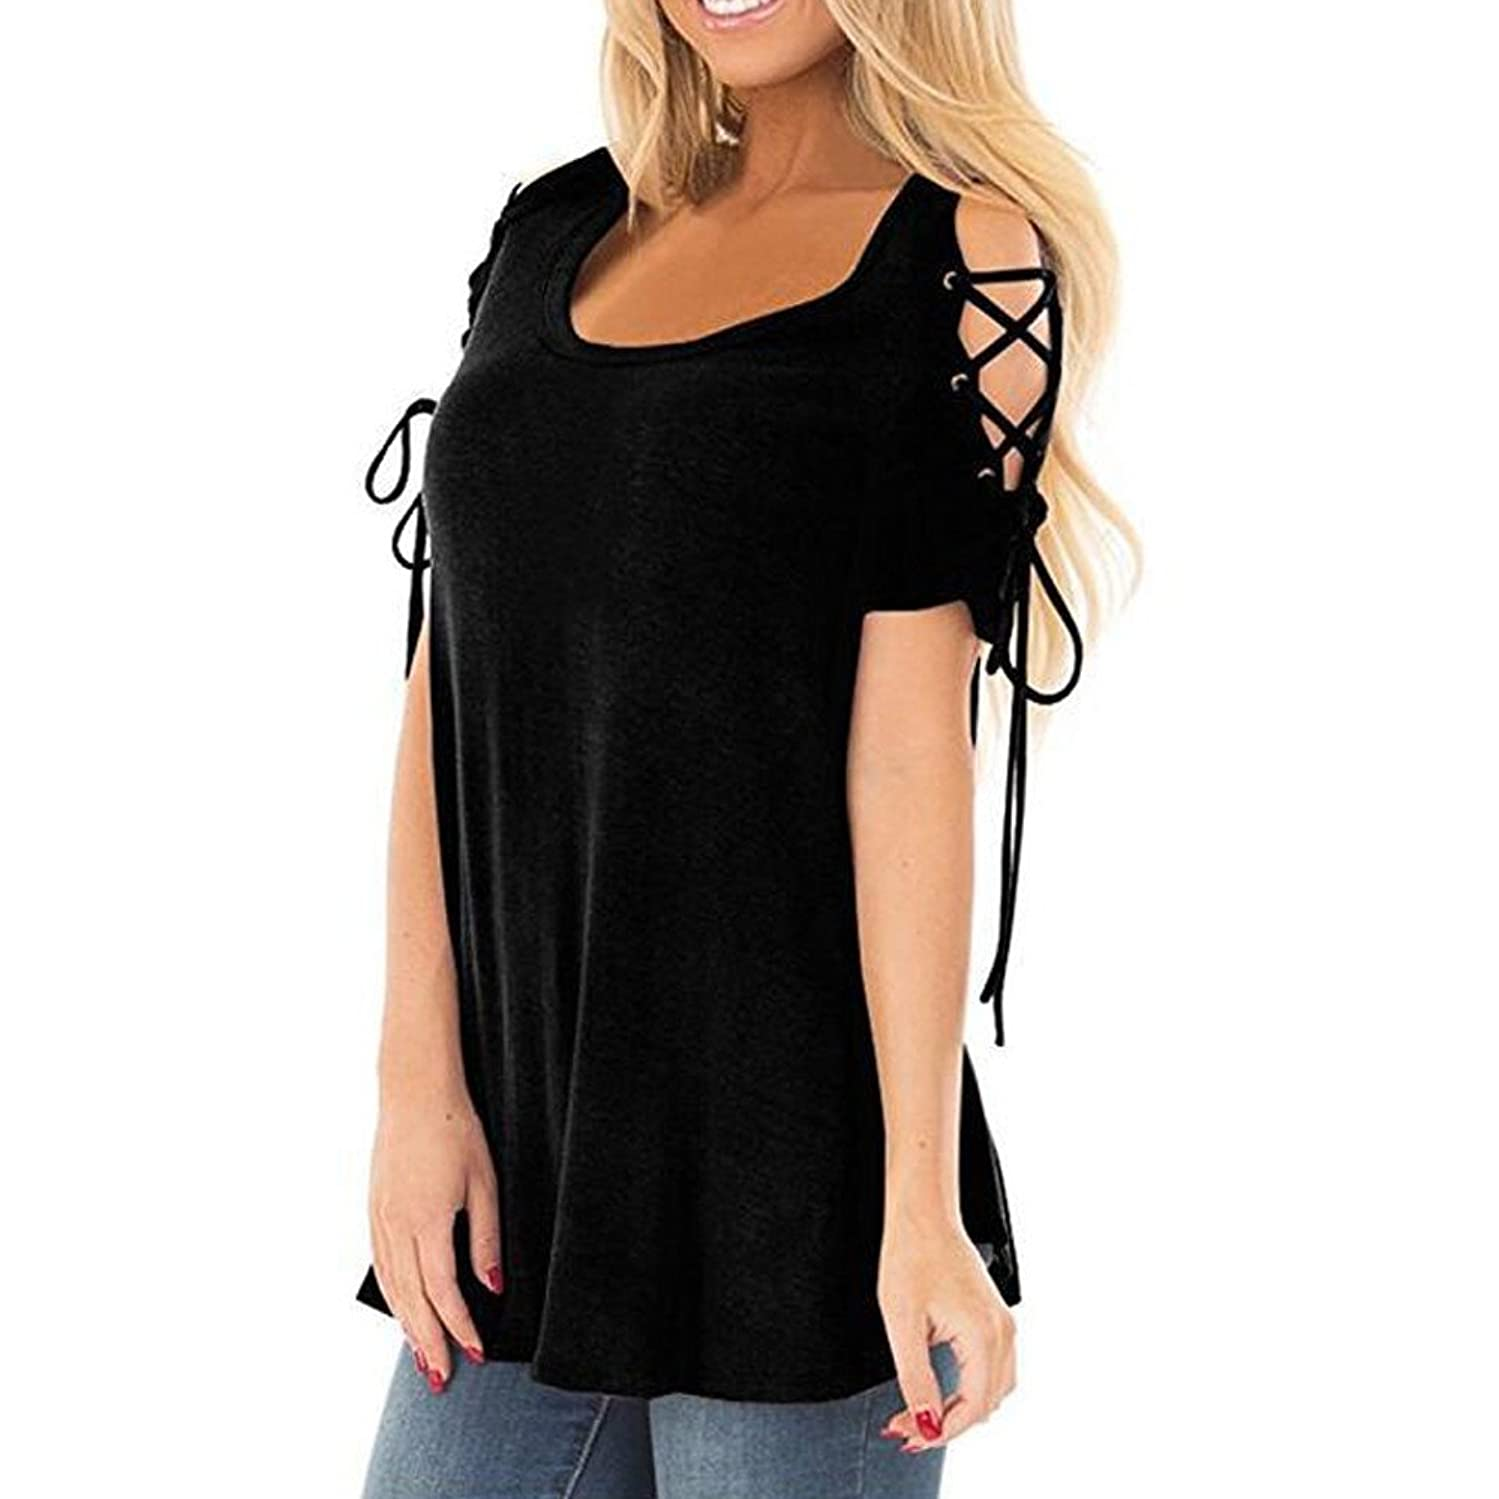 Amlaiworld Women Plus Size T Shirt Summer Tee Tops Sexy Solid O-Neck Stitching Strapless Short Sleeved Casual Shirt Blouse